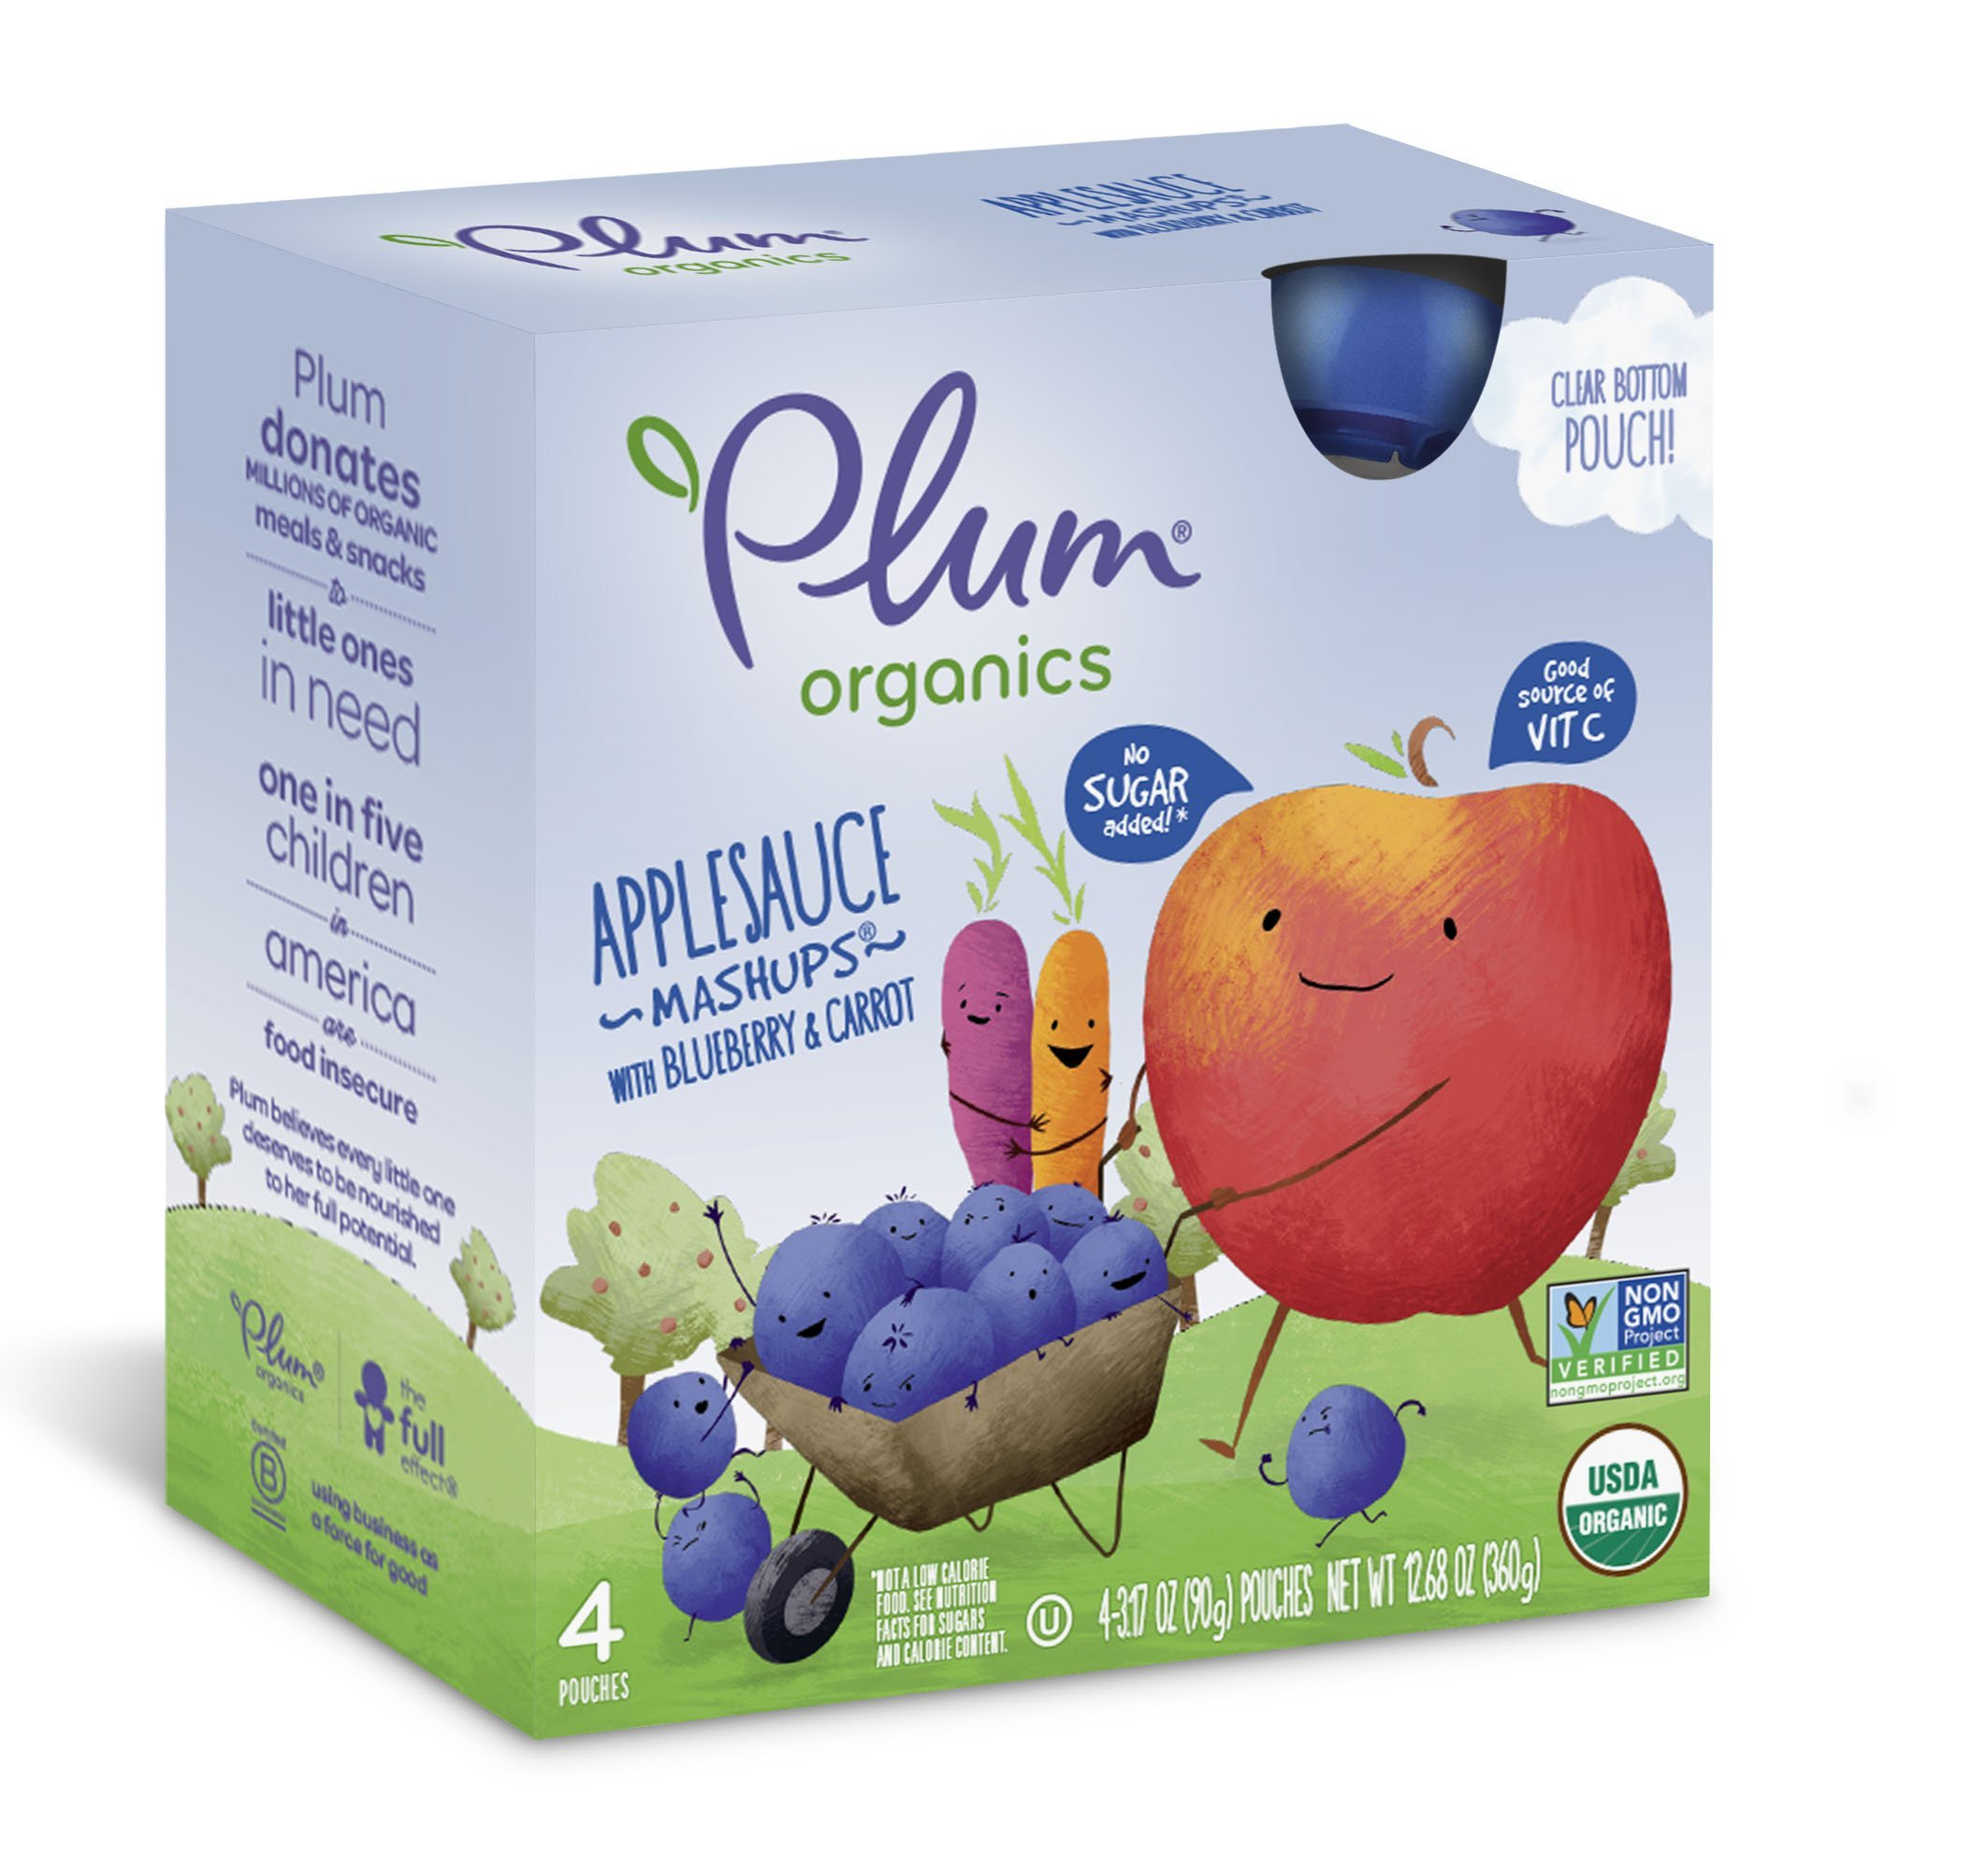 Plum Organics Mashups, Organic Kids Applesauce, Blueberry & Carrot, 3.17 ounce pouch, 4 count (Pack of 6)